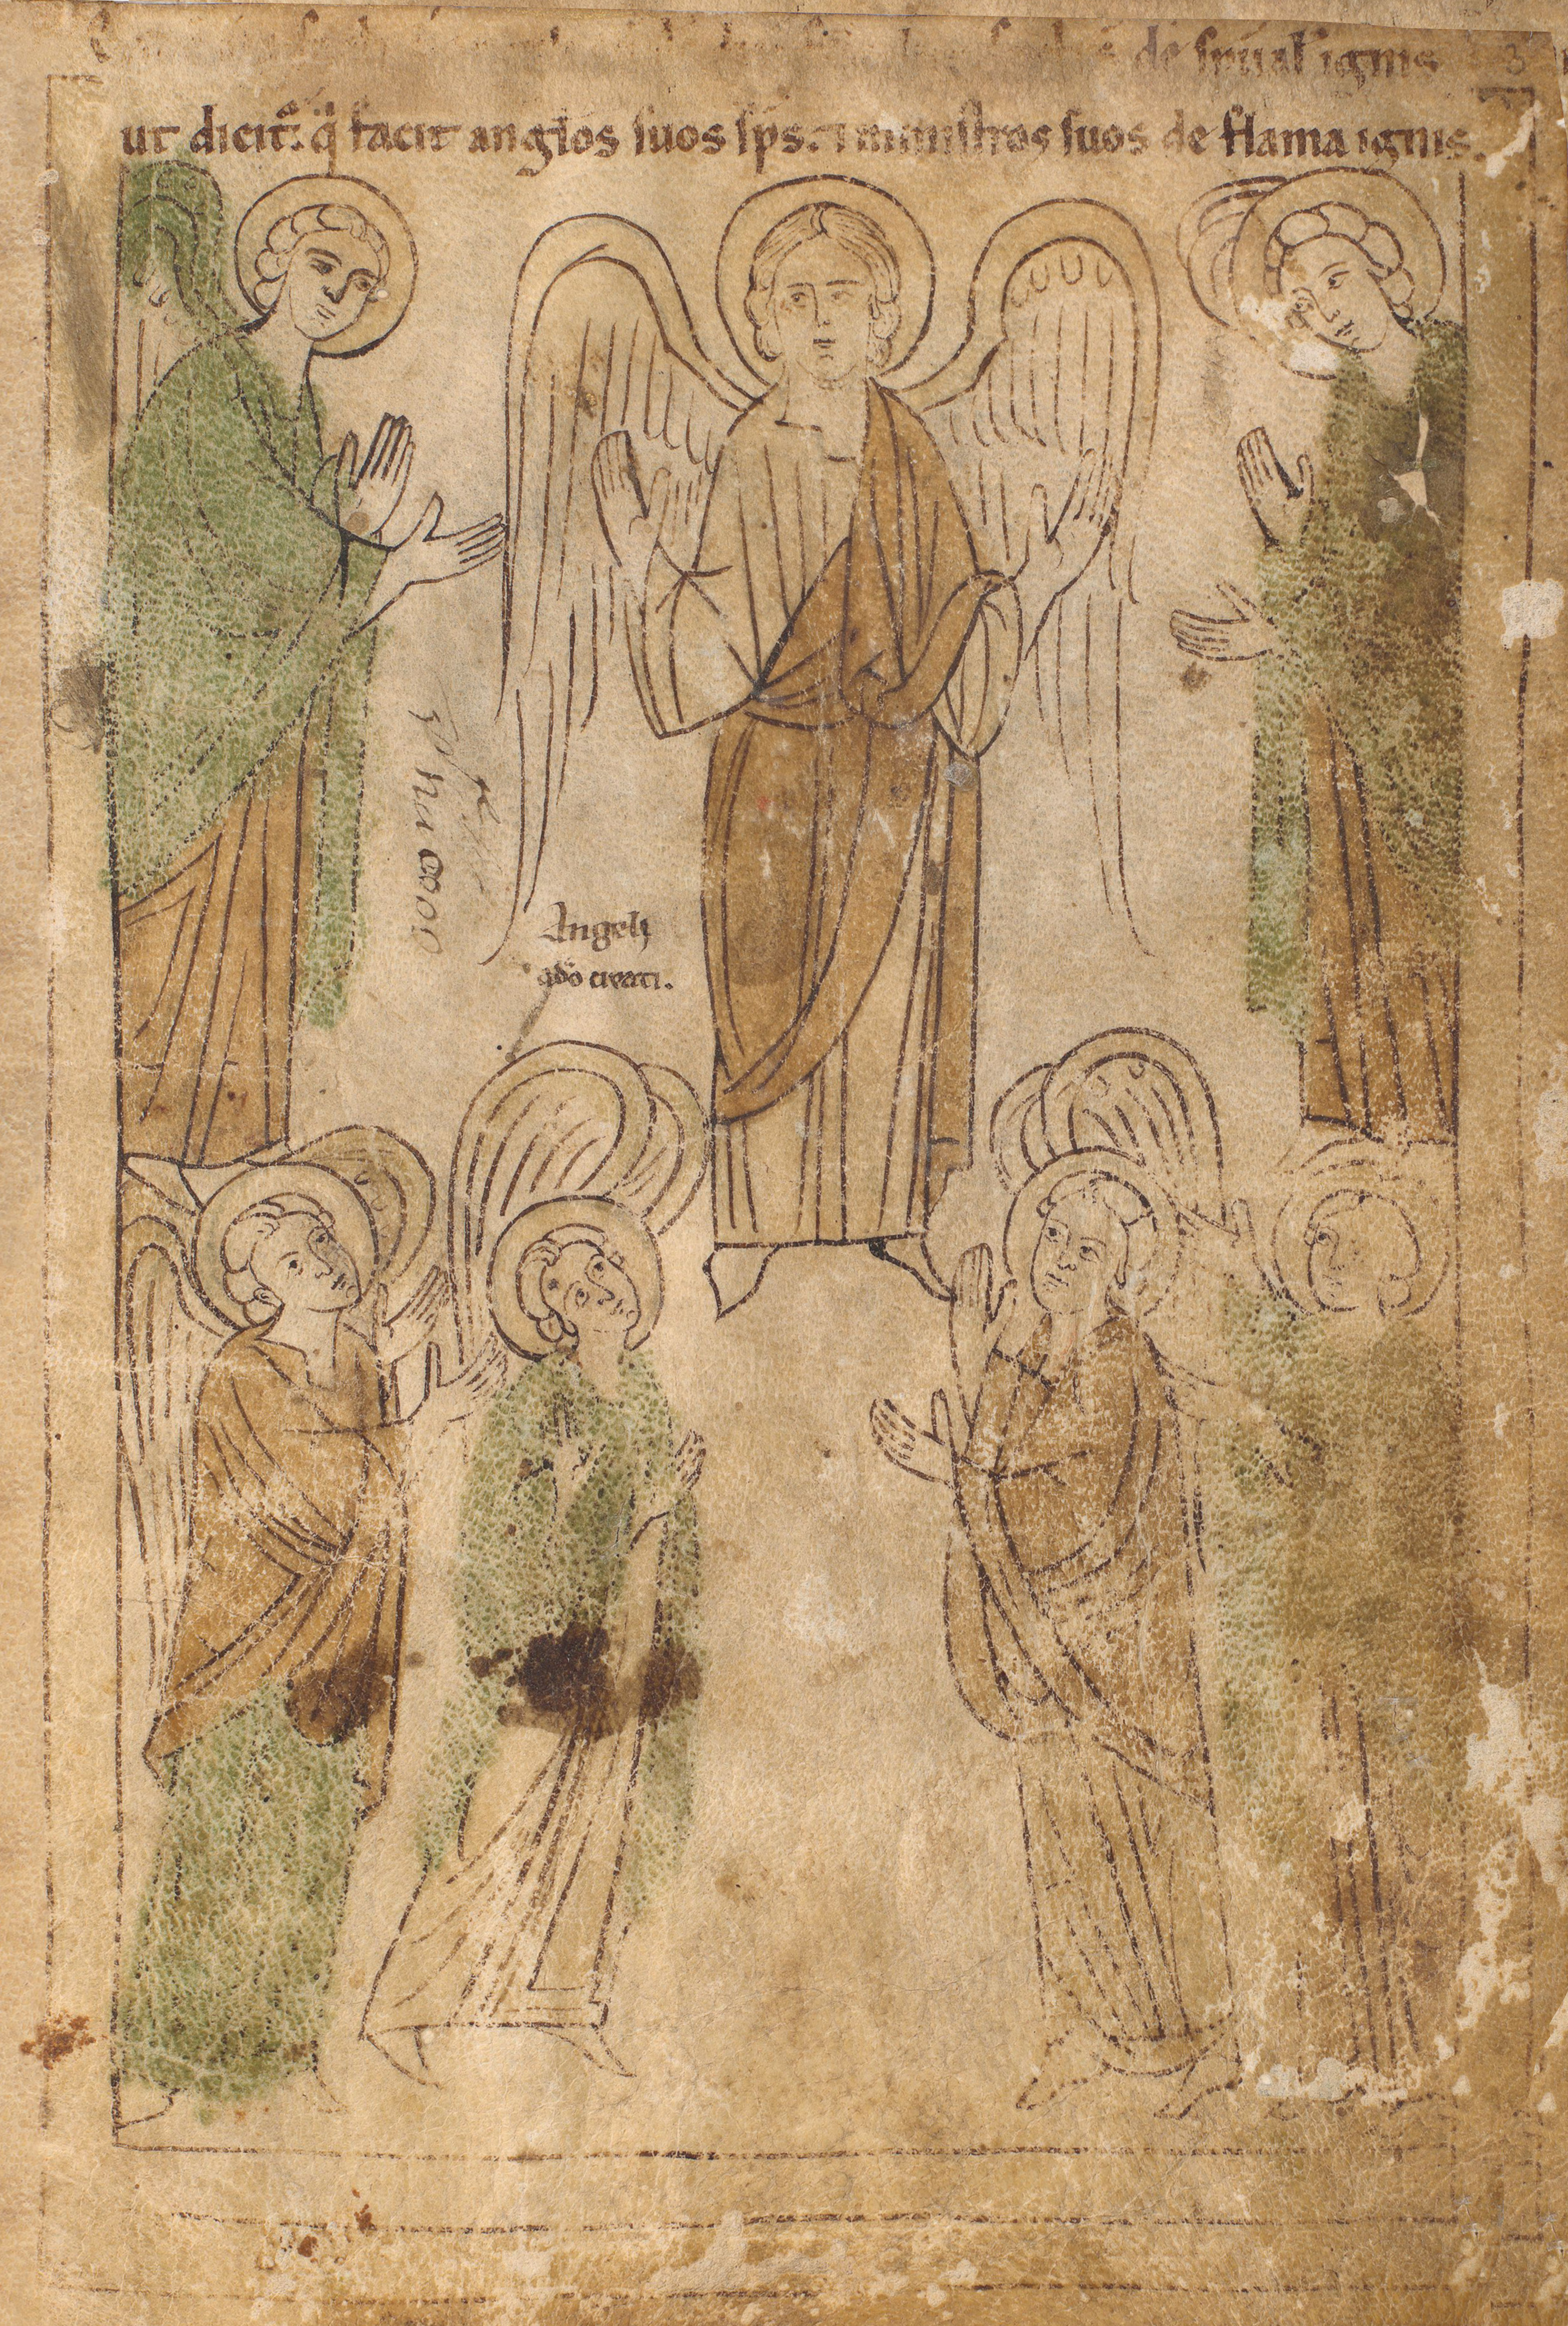 Seconde Bible de Pampelune, folio 3r – La création des anges (Gn 1, 3).